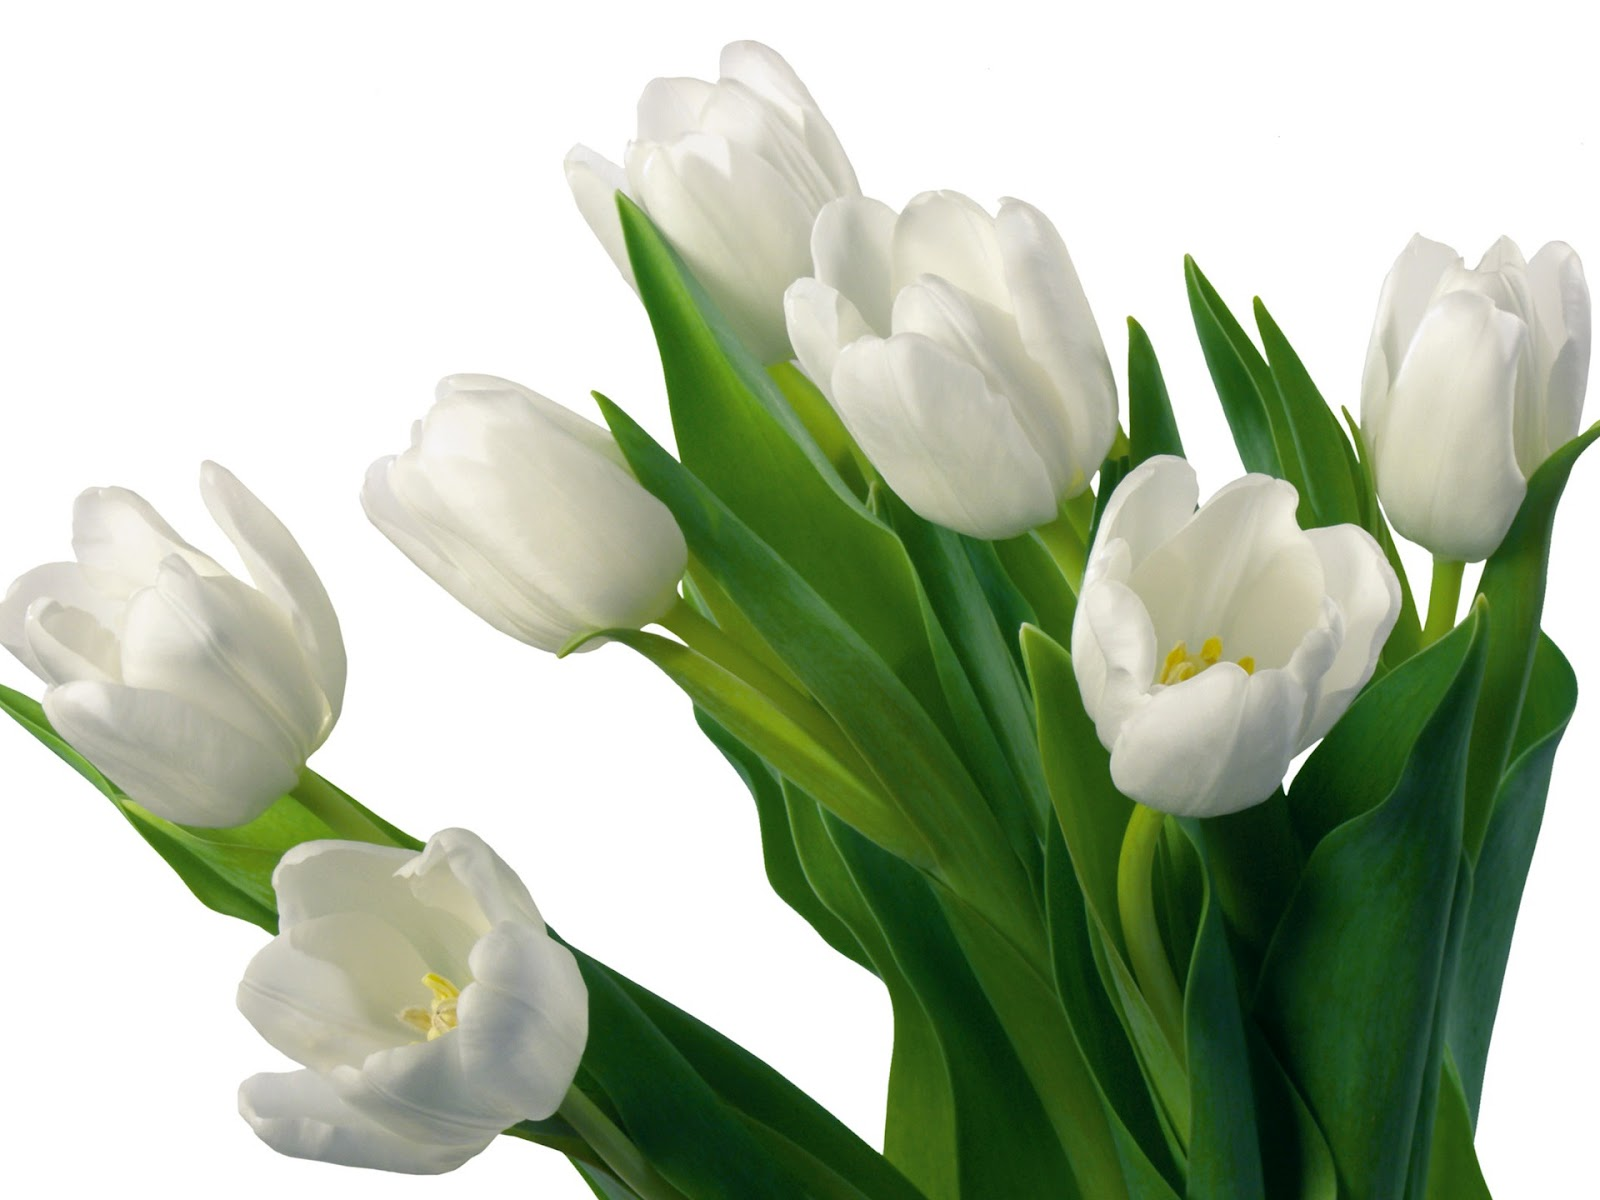 Flowers For Flower Lovers.: White Tulips Flowers